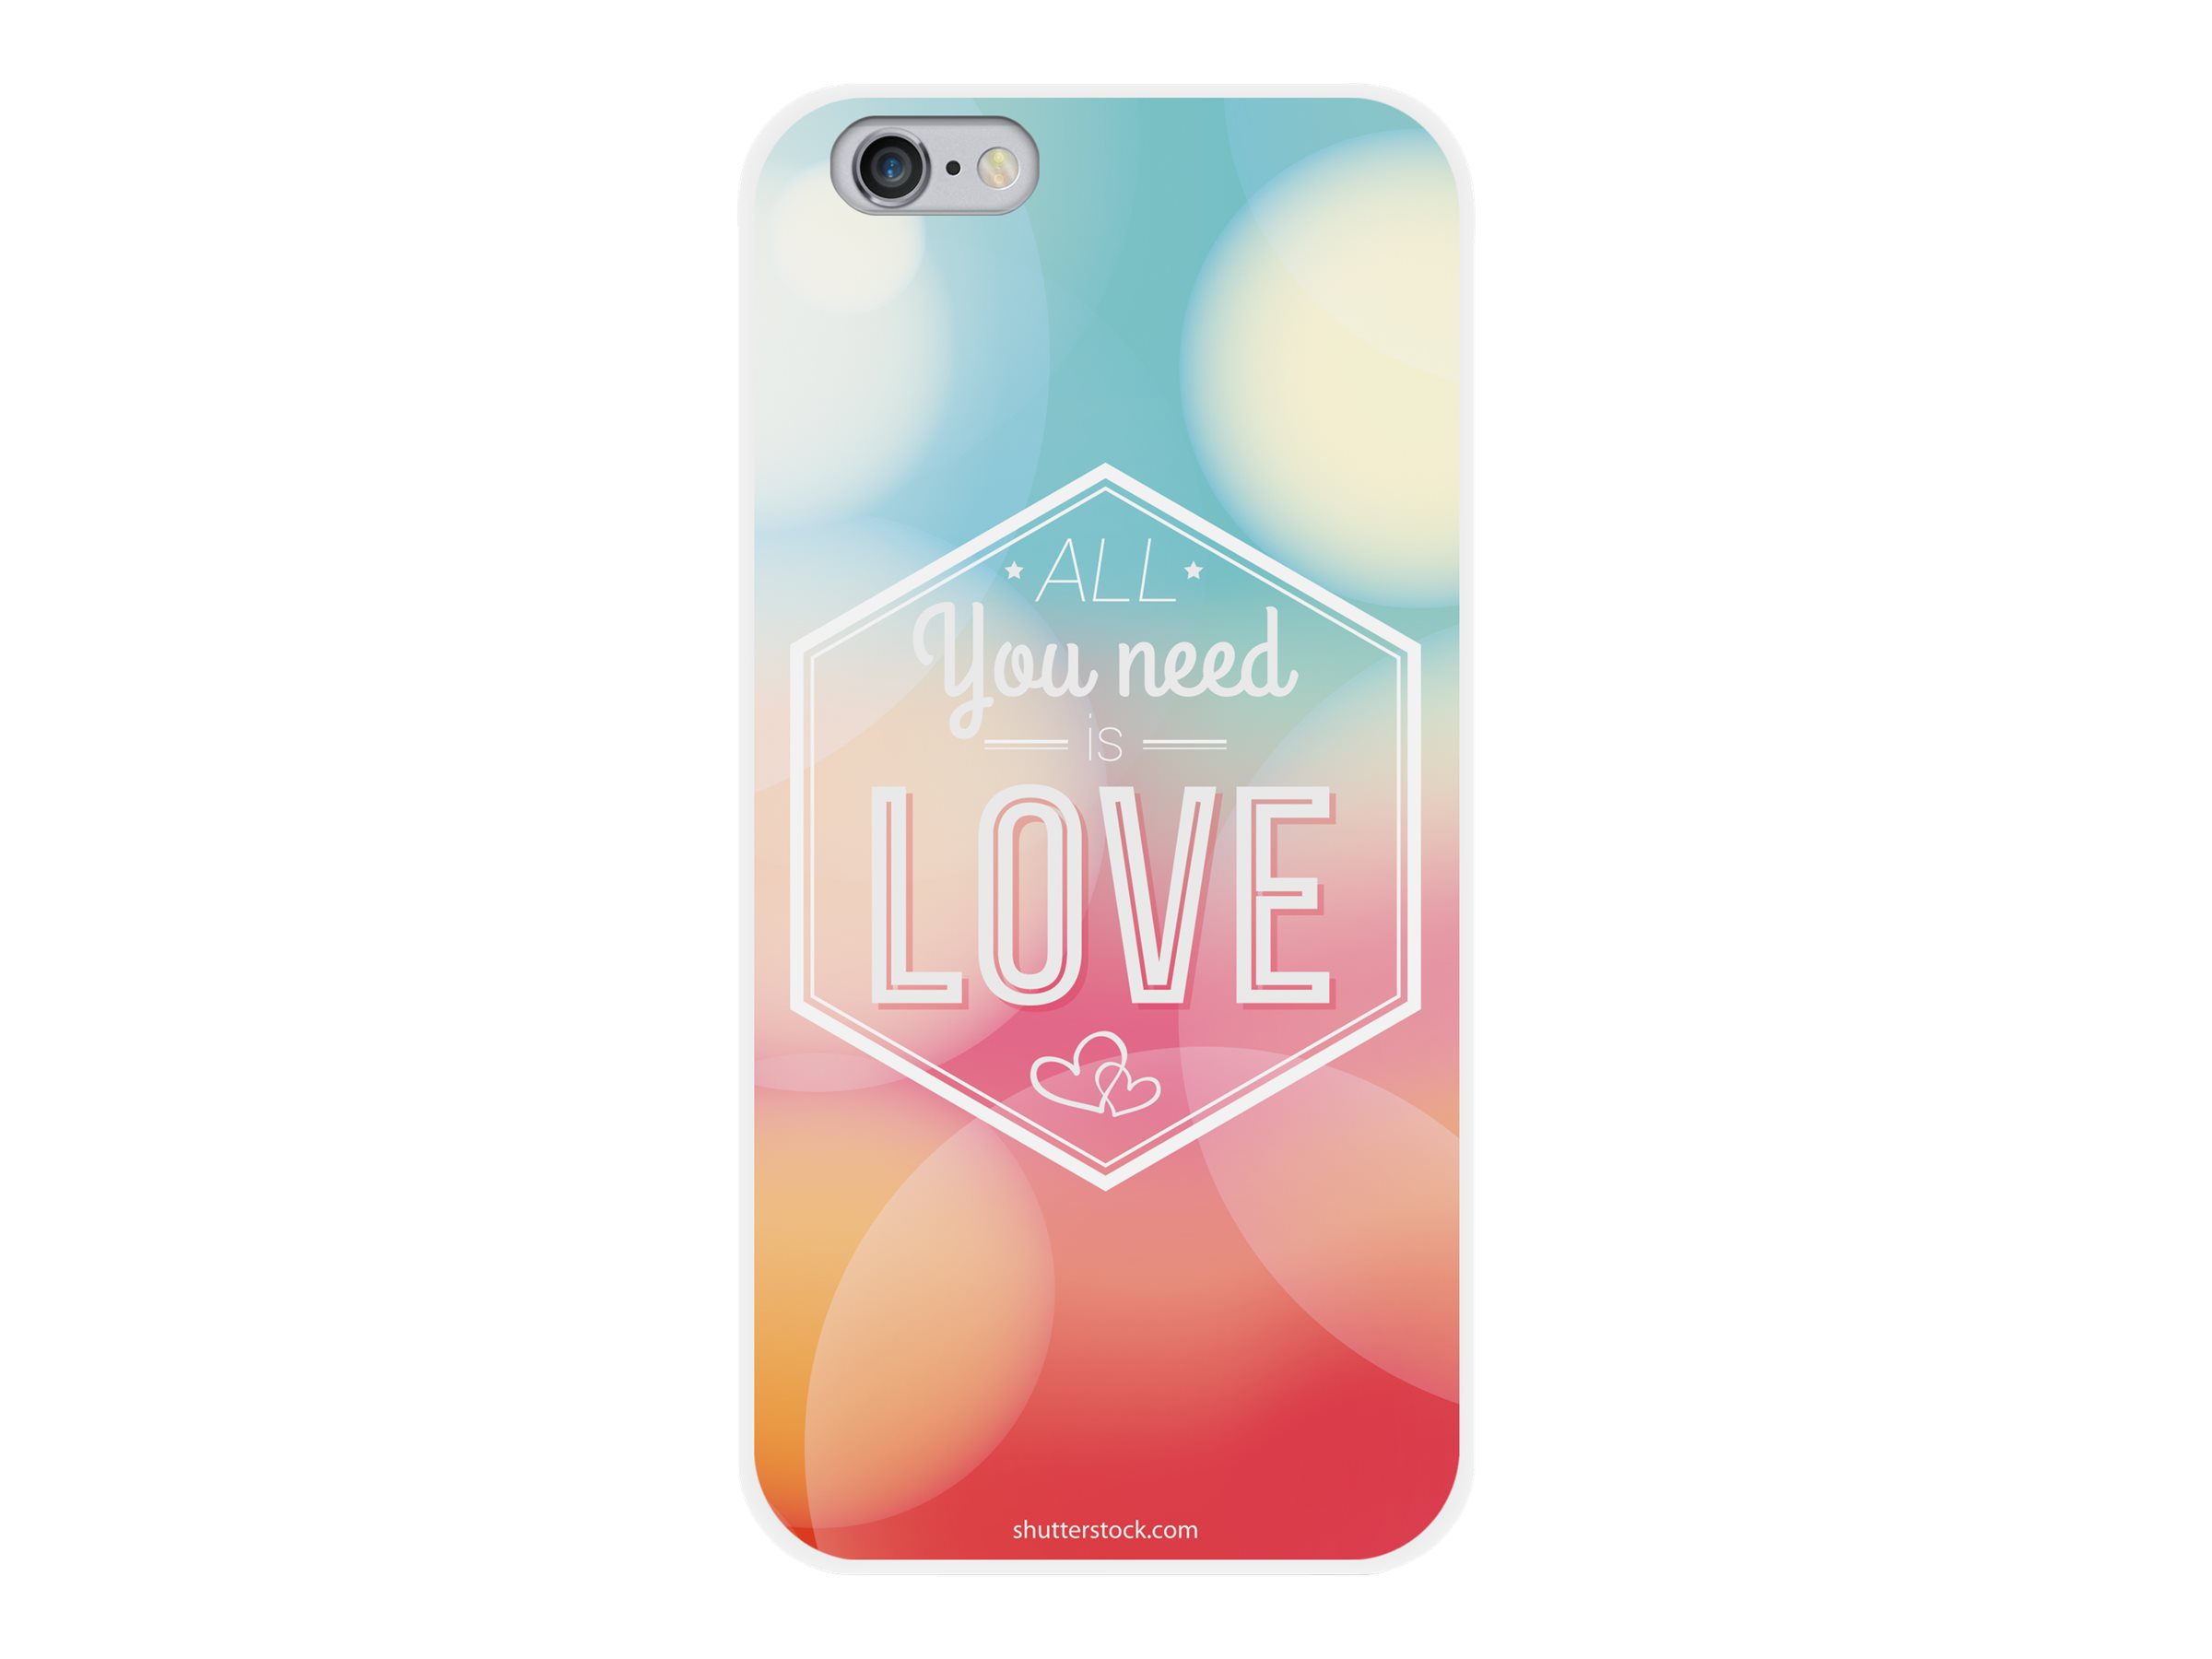 Muvit all you need - Coque de protection pour smartphone - blanc, bleu, rose - pour iPhone 6